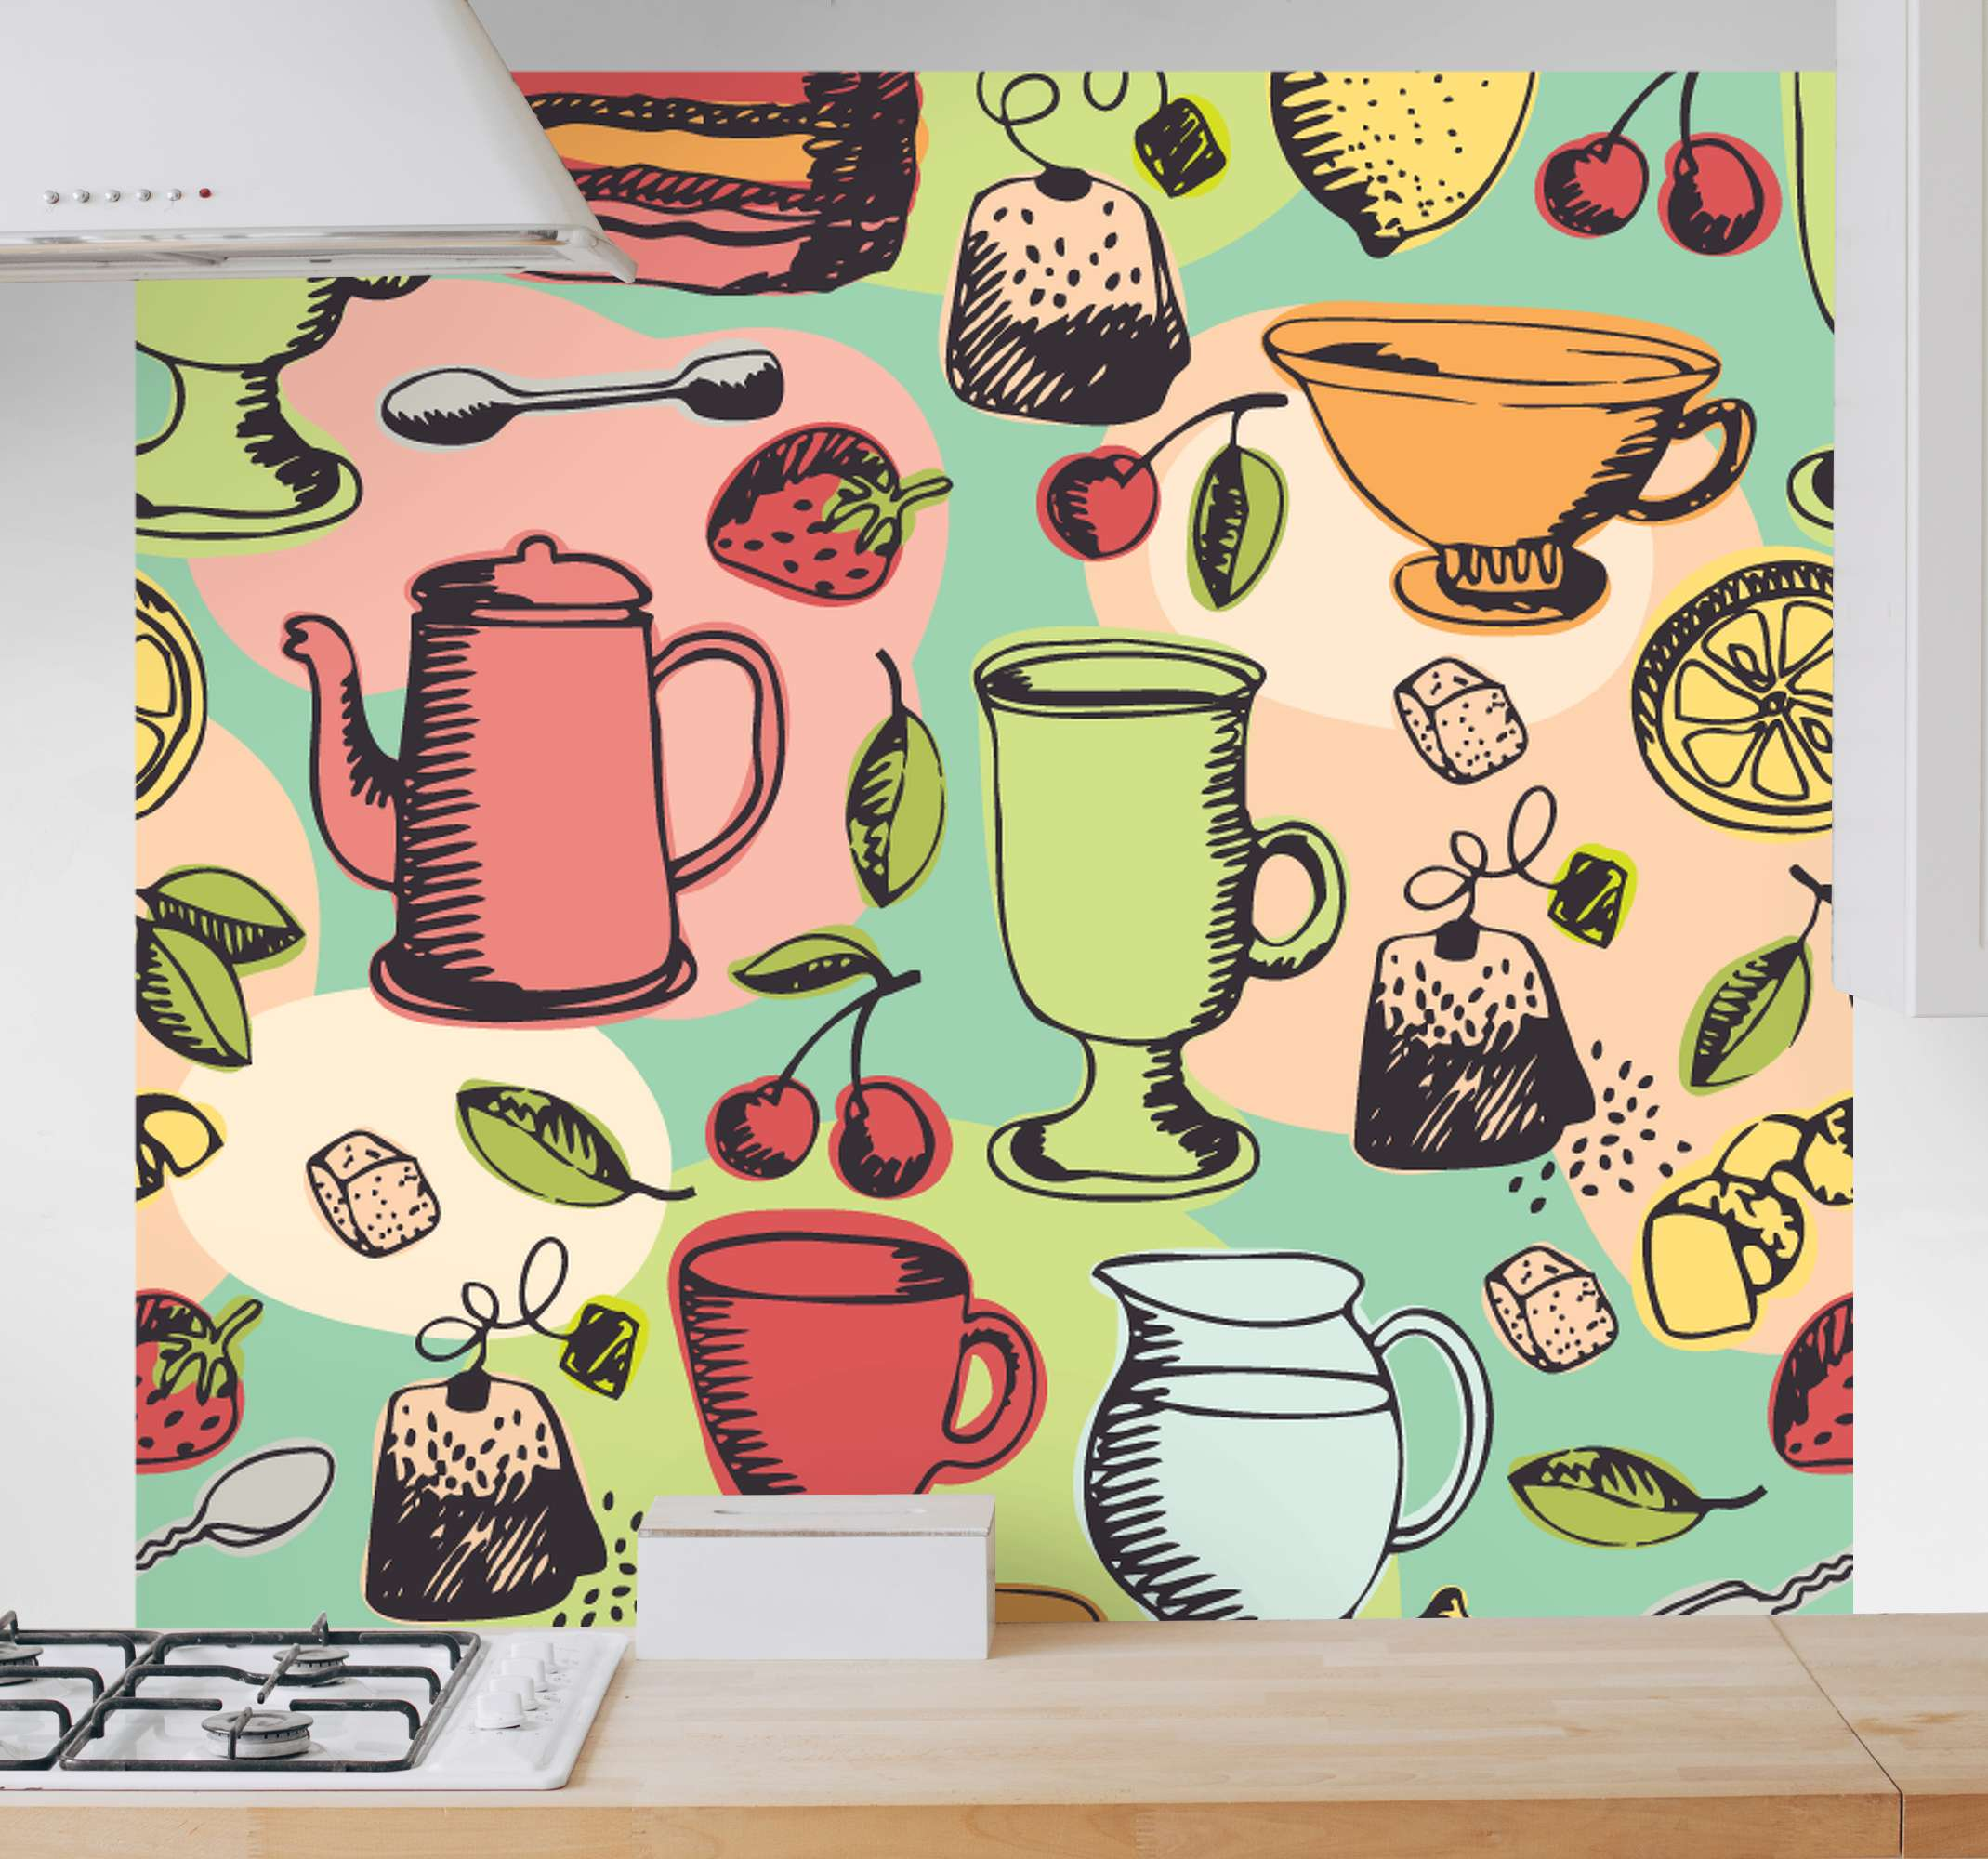 TenStickers. Food theme Kitchen canvas art. Food theme kitchen wall print to decorate your kitchen space. It contains design of different tea jugs, kettles, drinking cups, fruits, tea bags, etc.